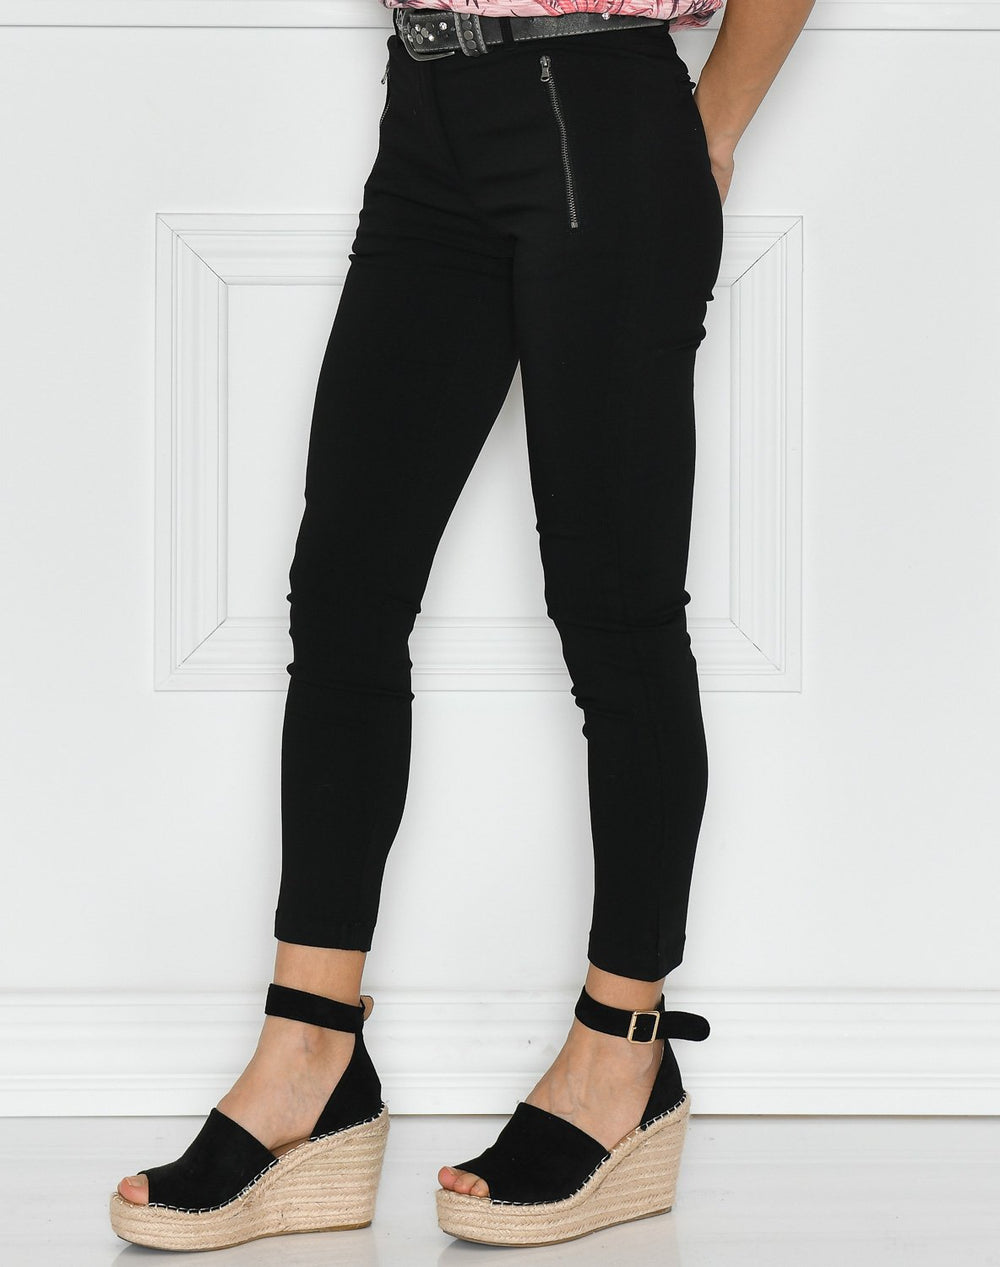 Soya Concept Lilly 29 pants black